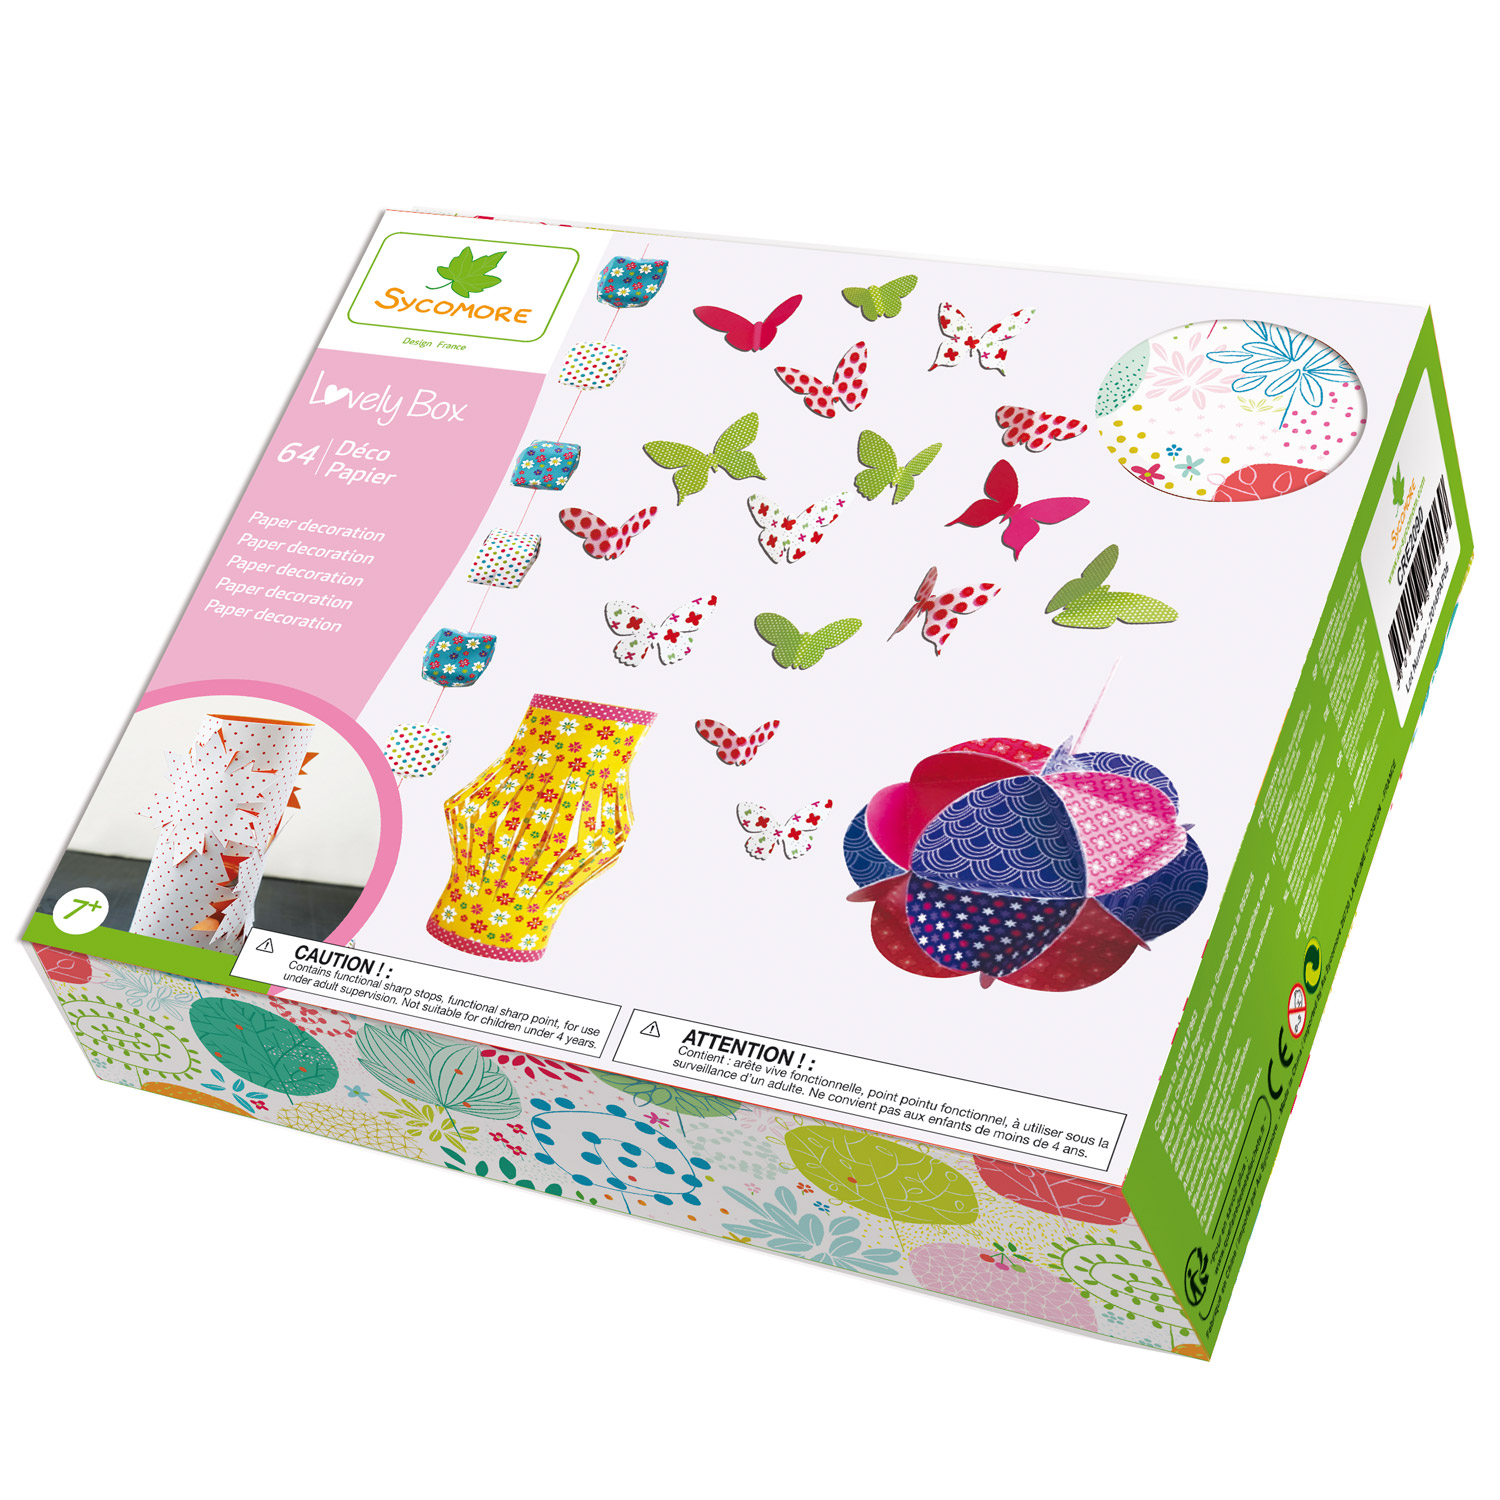 Coffret Lovely Box : Déco papier